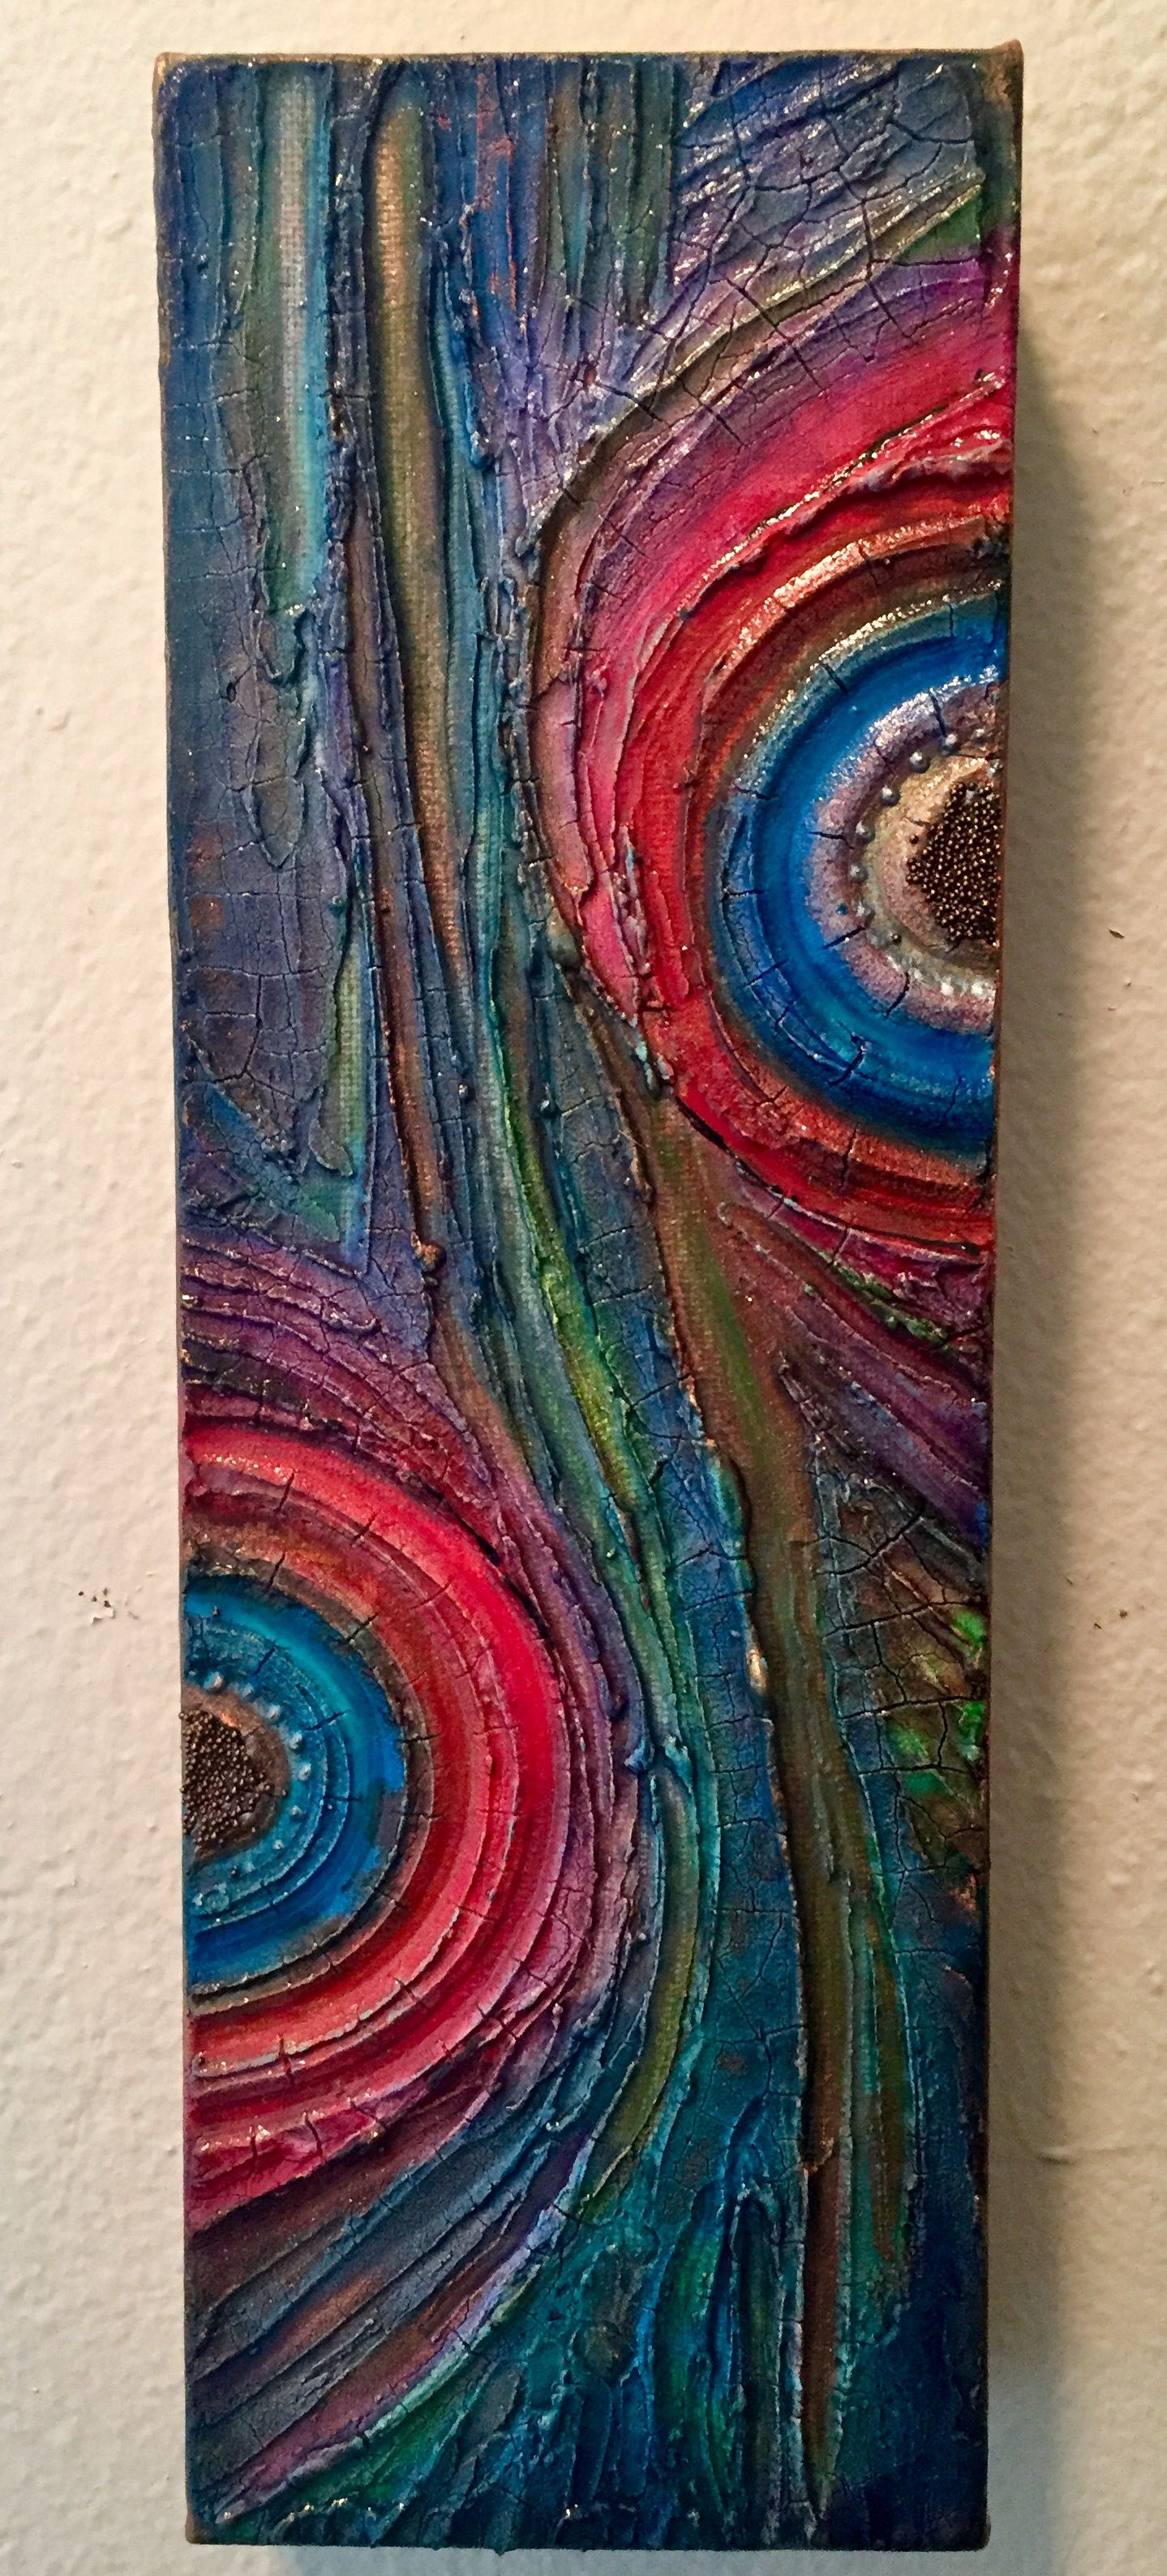 Modeling Paste And Crackle Paste On Canvas With Acrylic Inks Acrylics And Micro Beads With Images Texture Painting On Canvas Abstract Painting Acrylic Canvas Painting